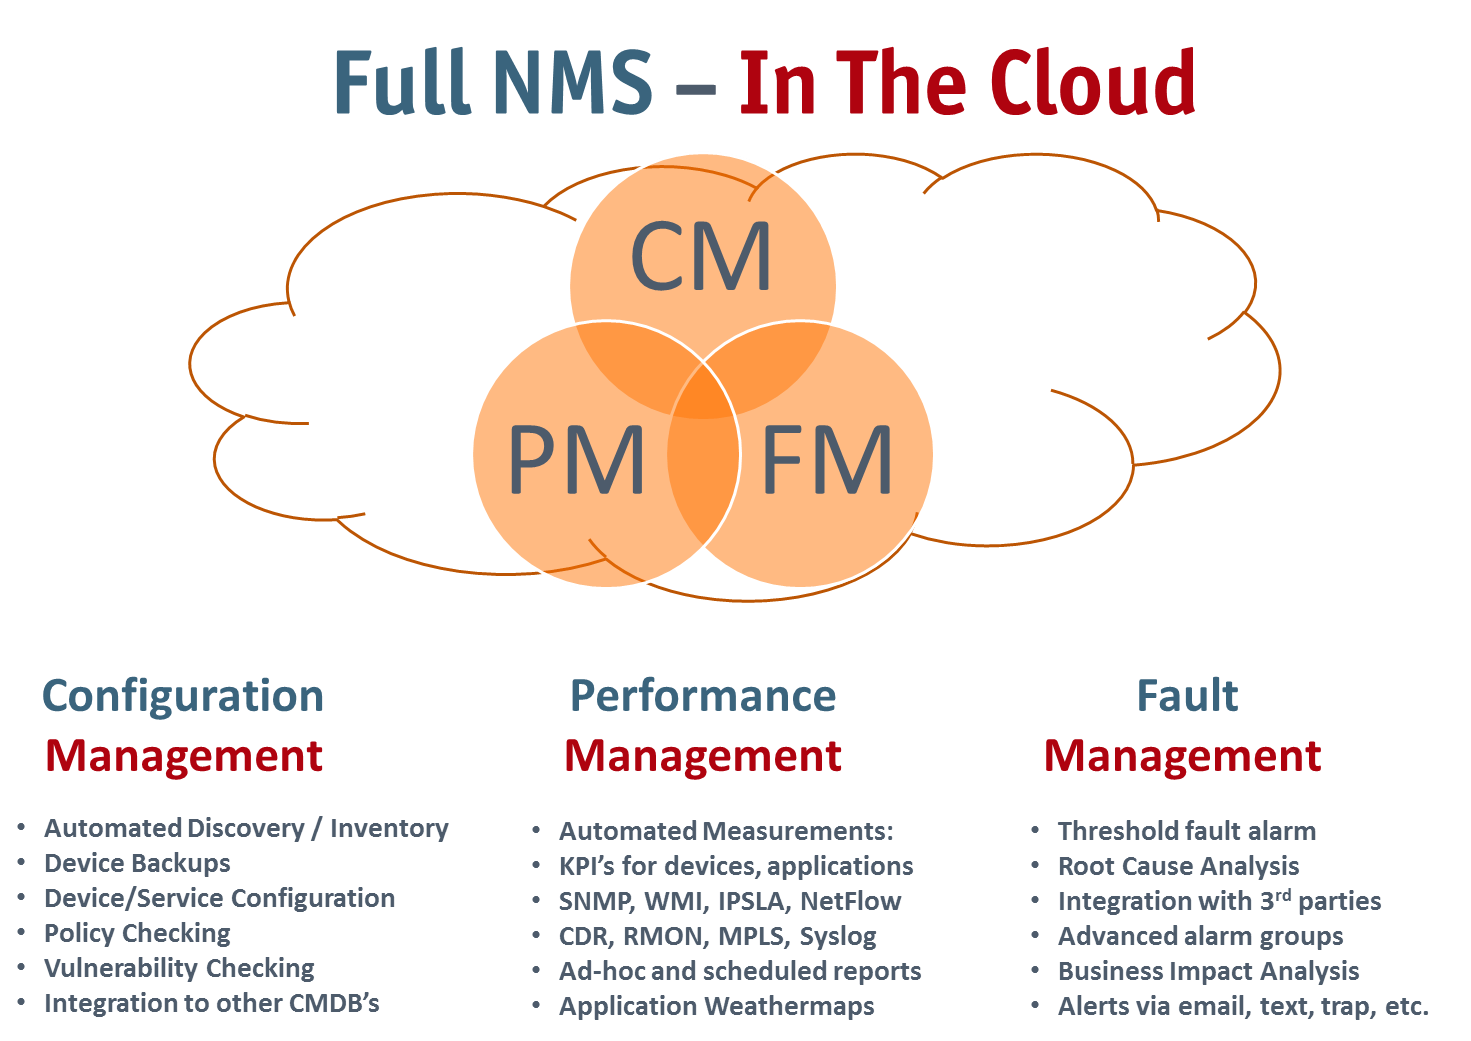 NMSaaS IT Management features